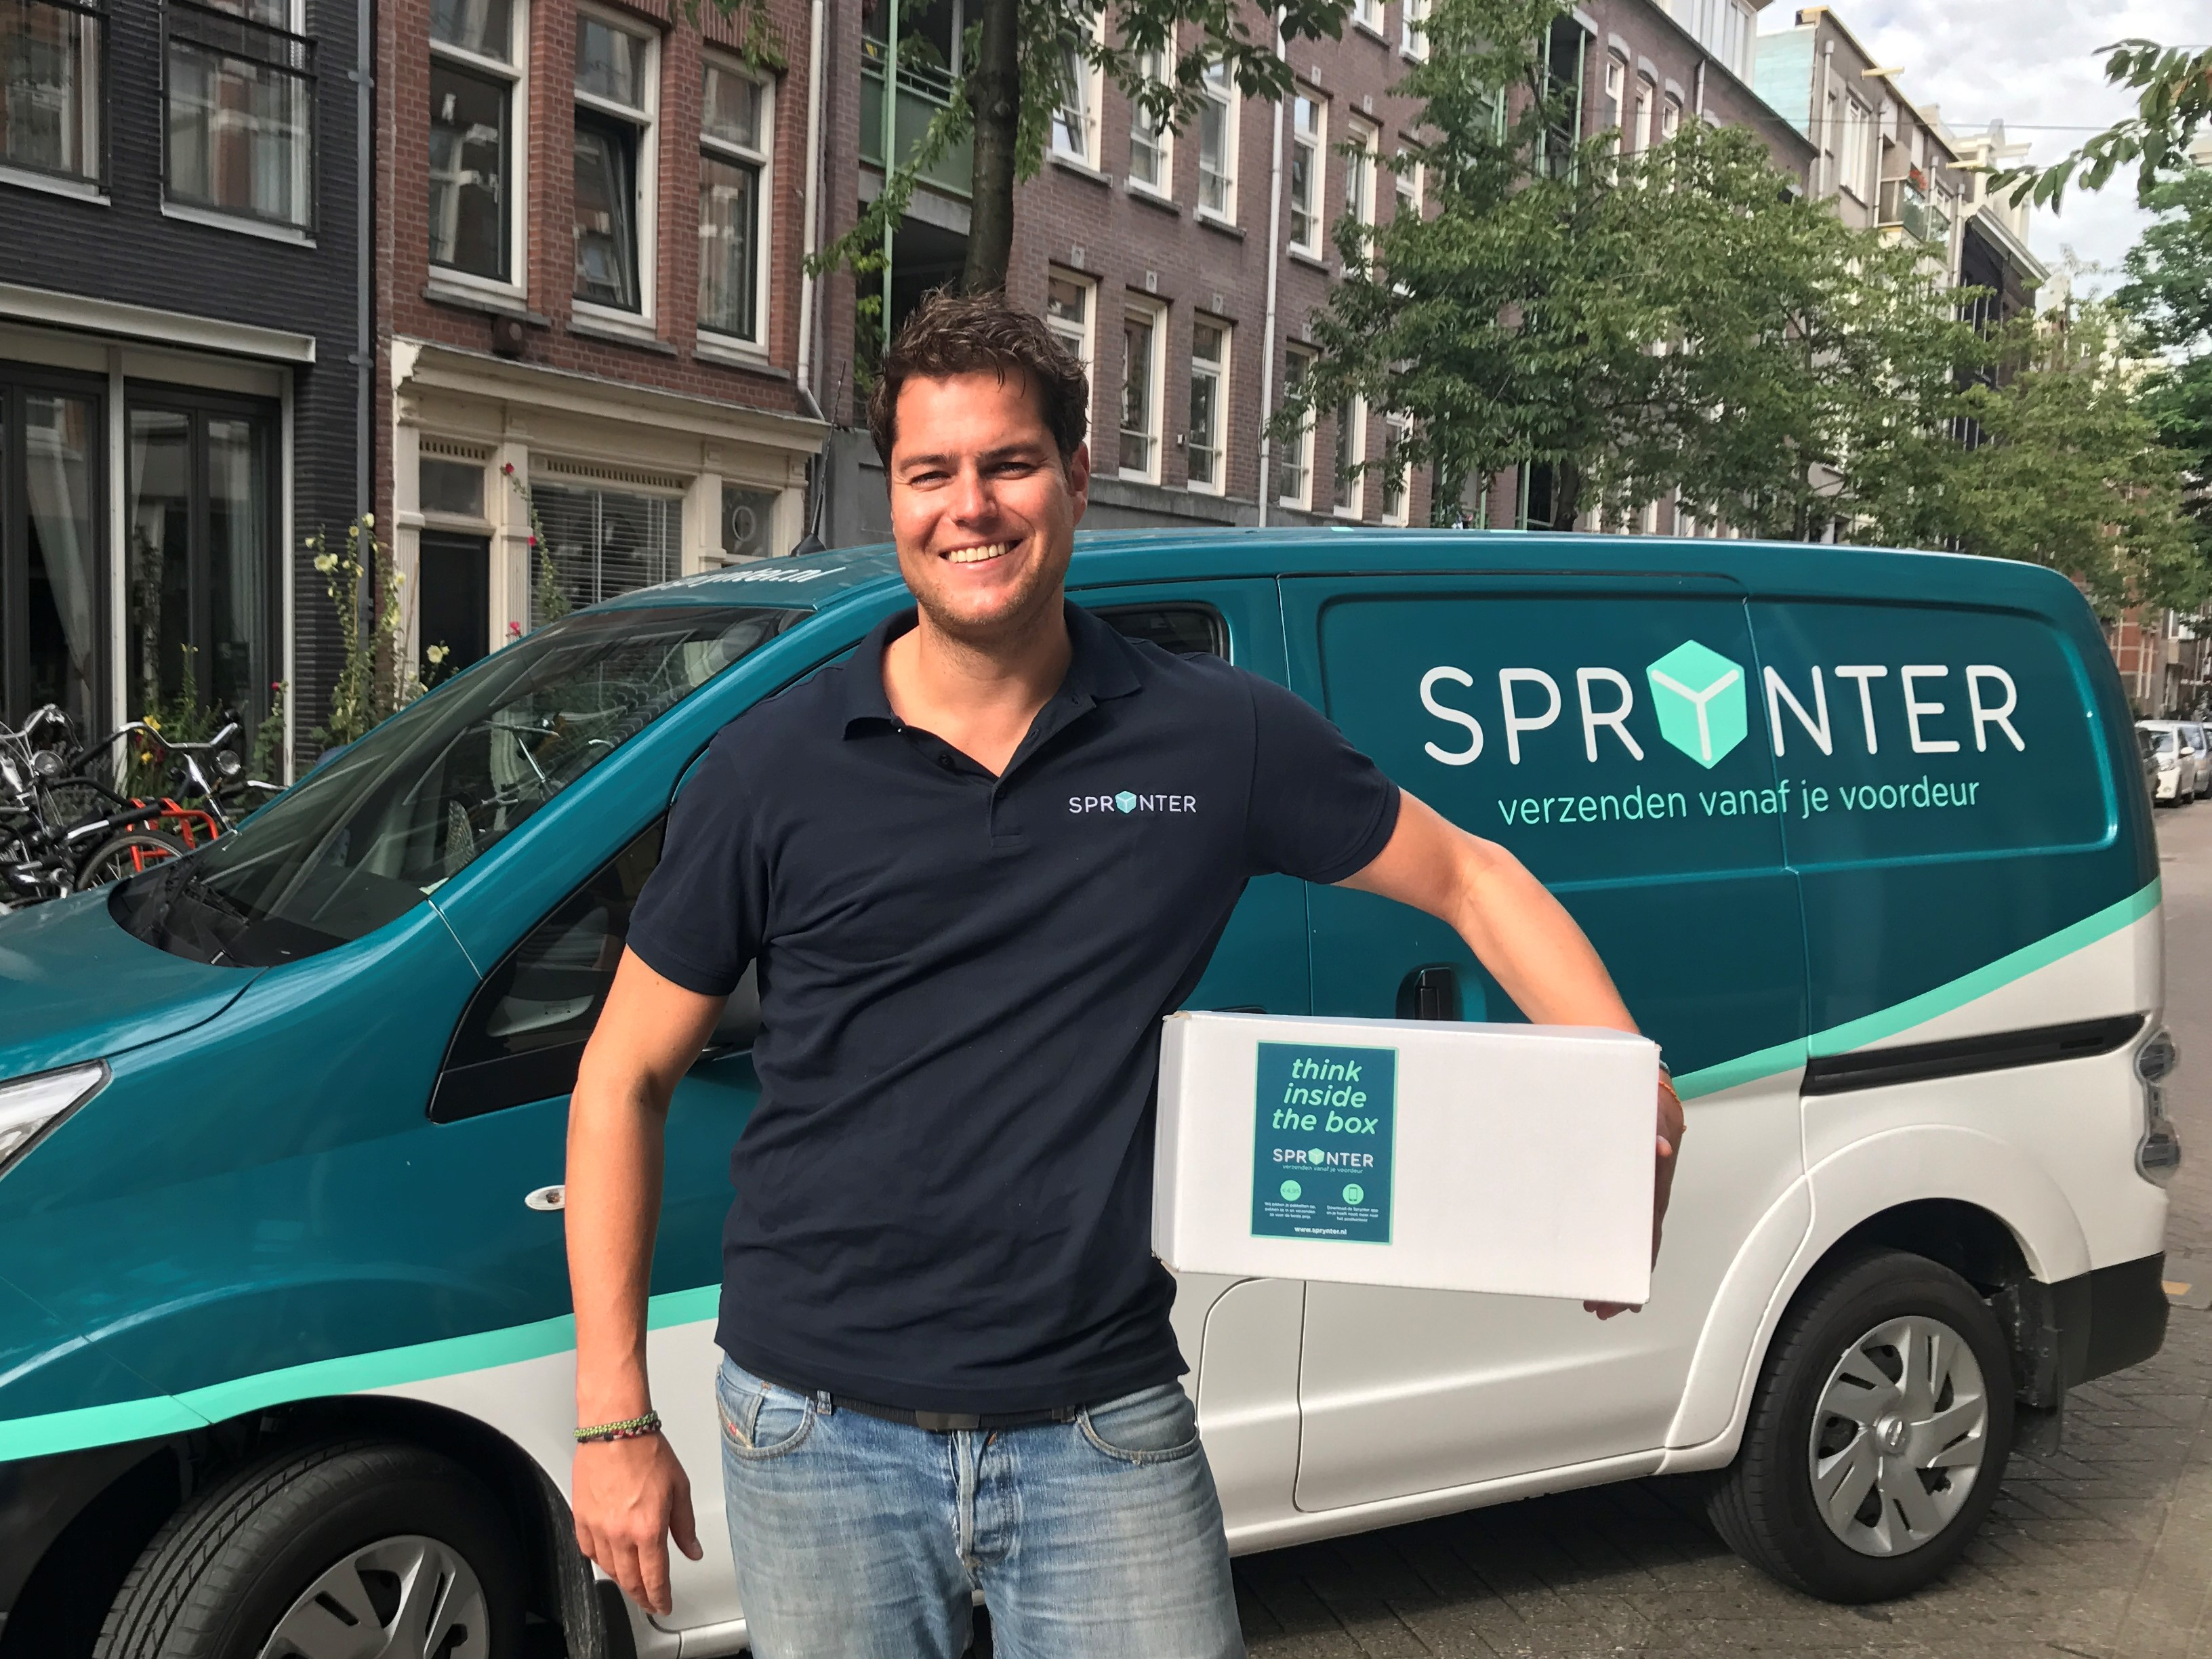 Sprynter solves package problems